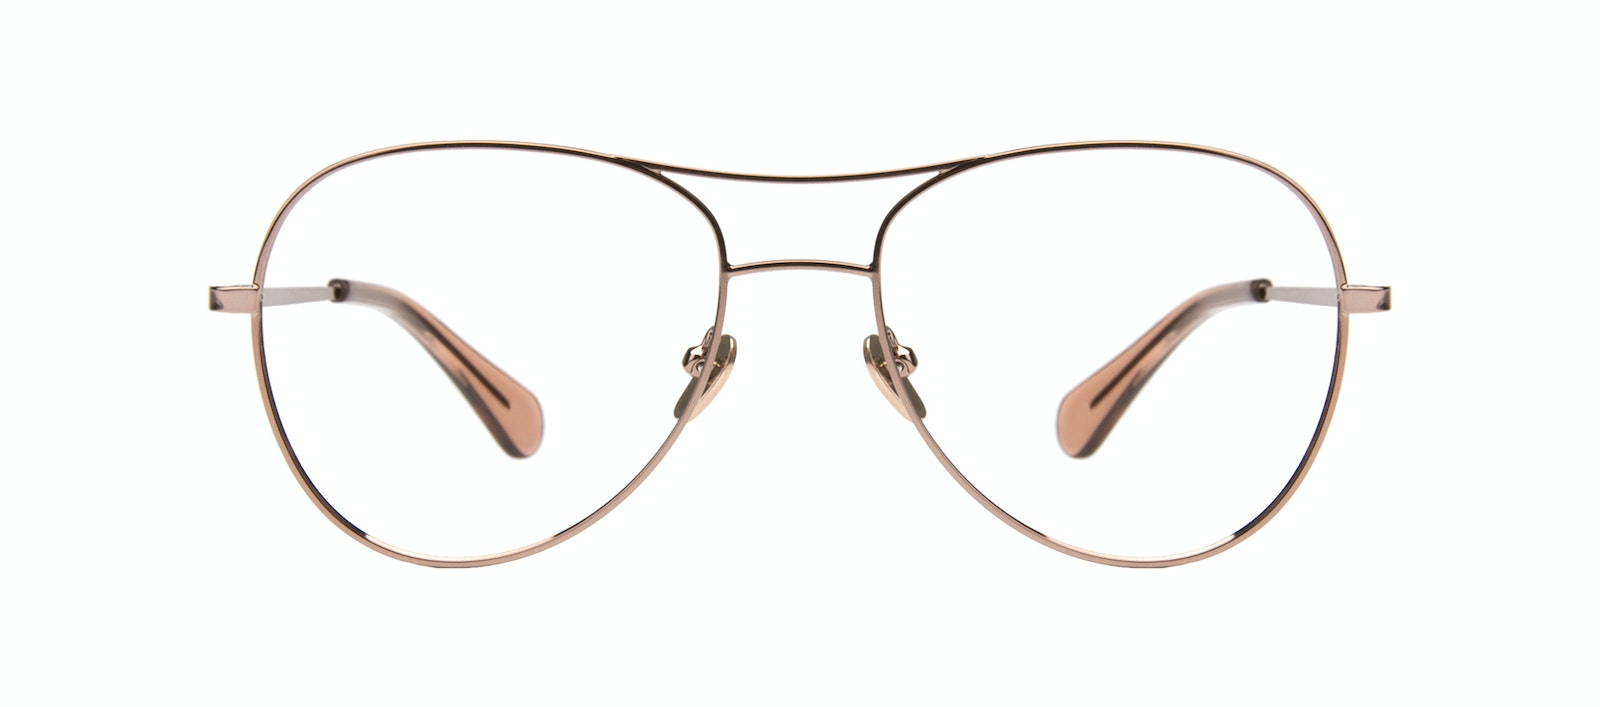 Affordable Fashion Glasses Aviator Eyeglasses Women Want Rose Gold Front